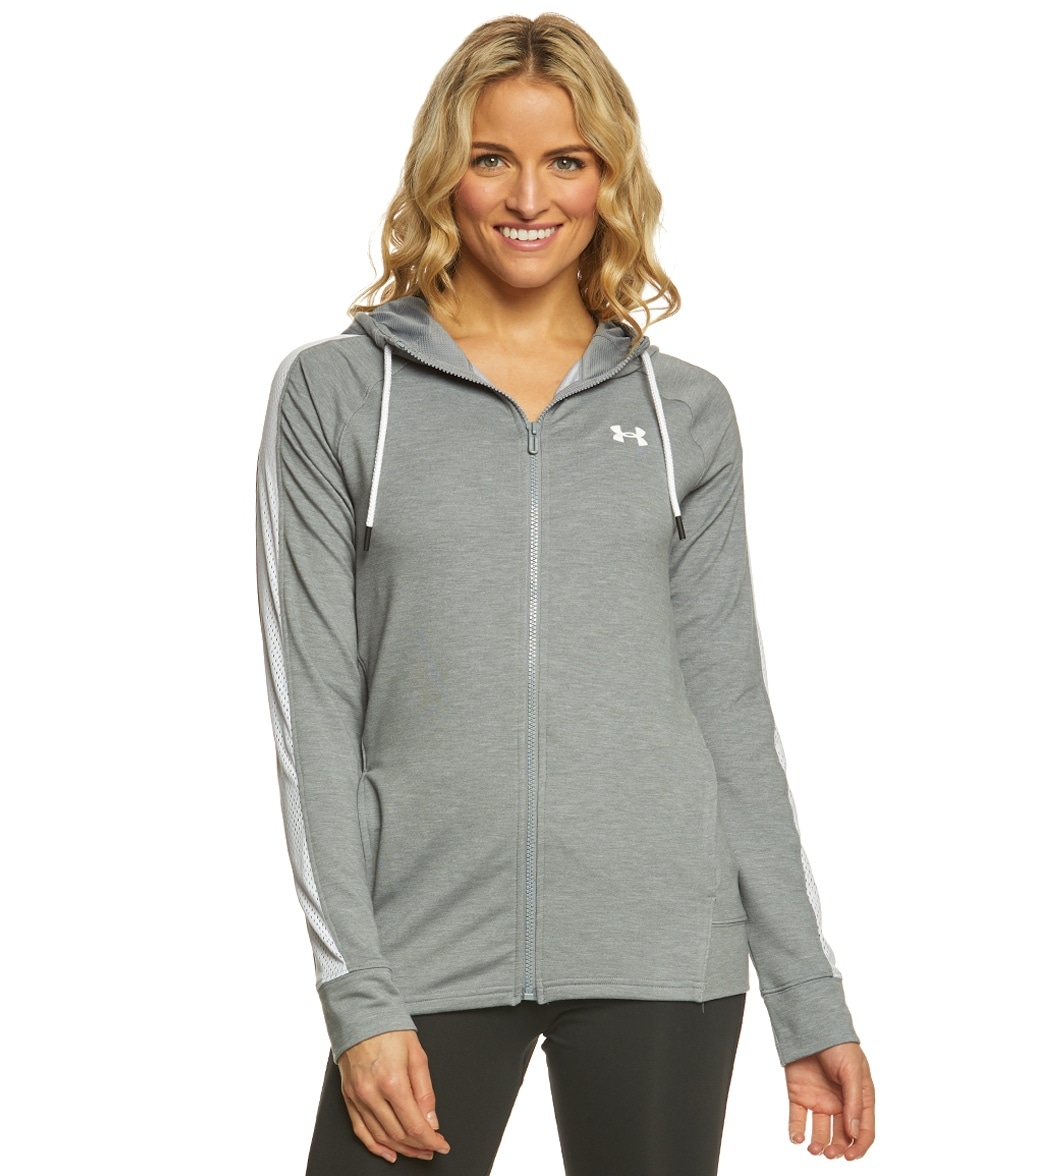 Under Armour Women s Featherweight Fleece Full Zip at SwimOutlet.com - Free  Shipping 99a7d6841f